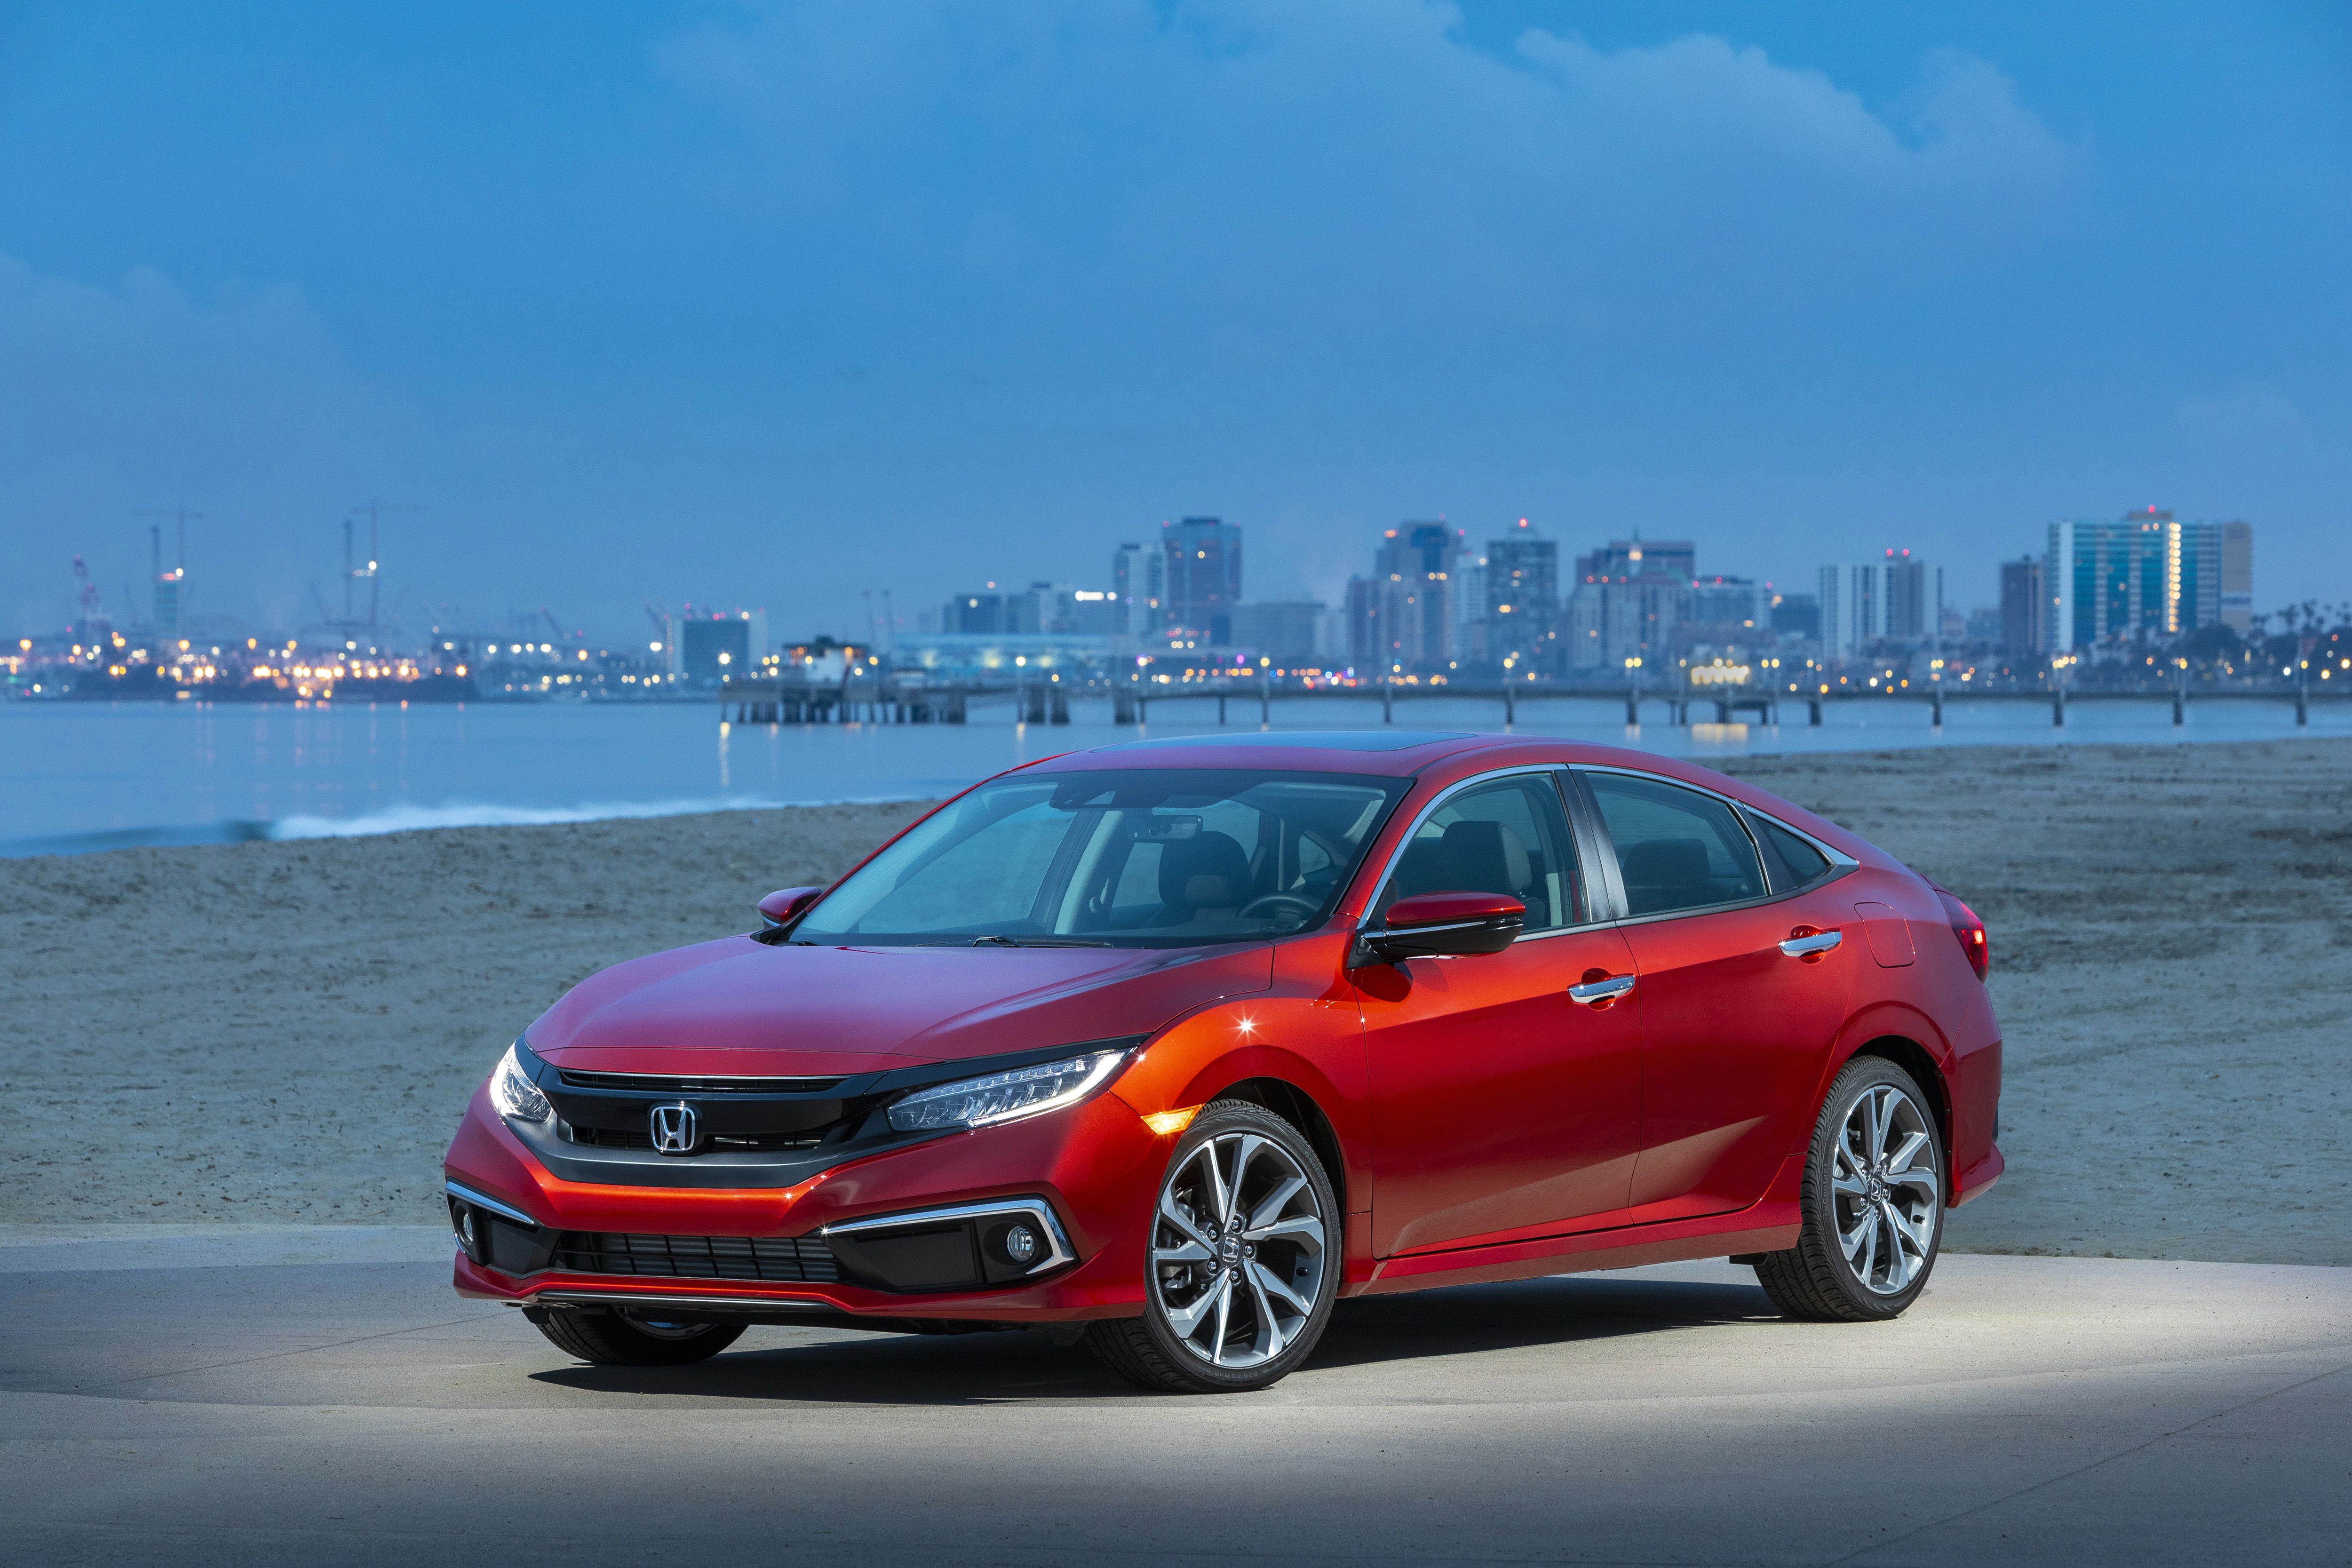 2021 Honda Civic Prices Rise 250 1050 As Lineup Shifts